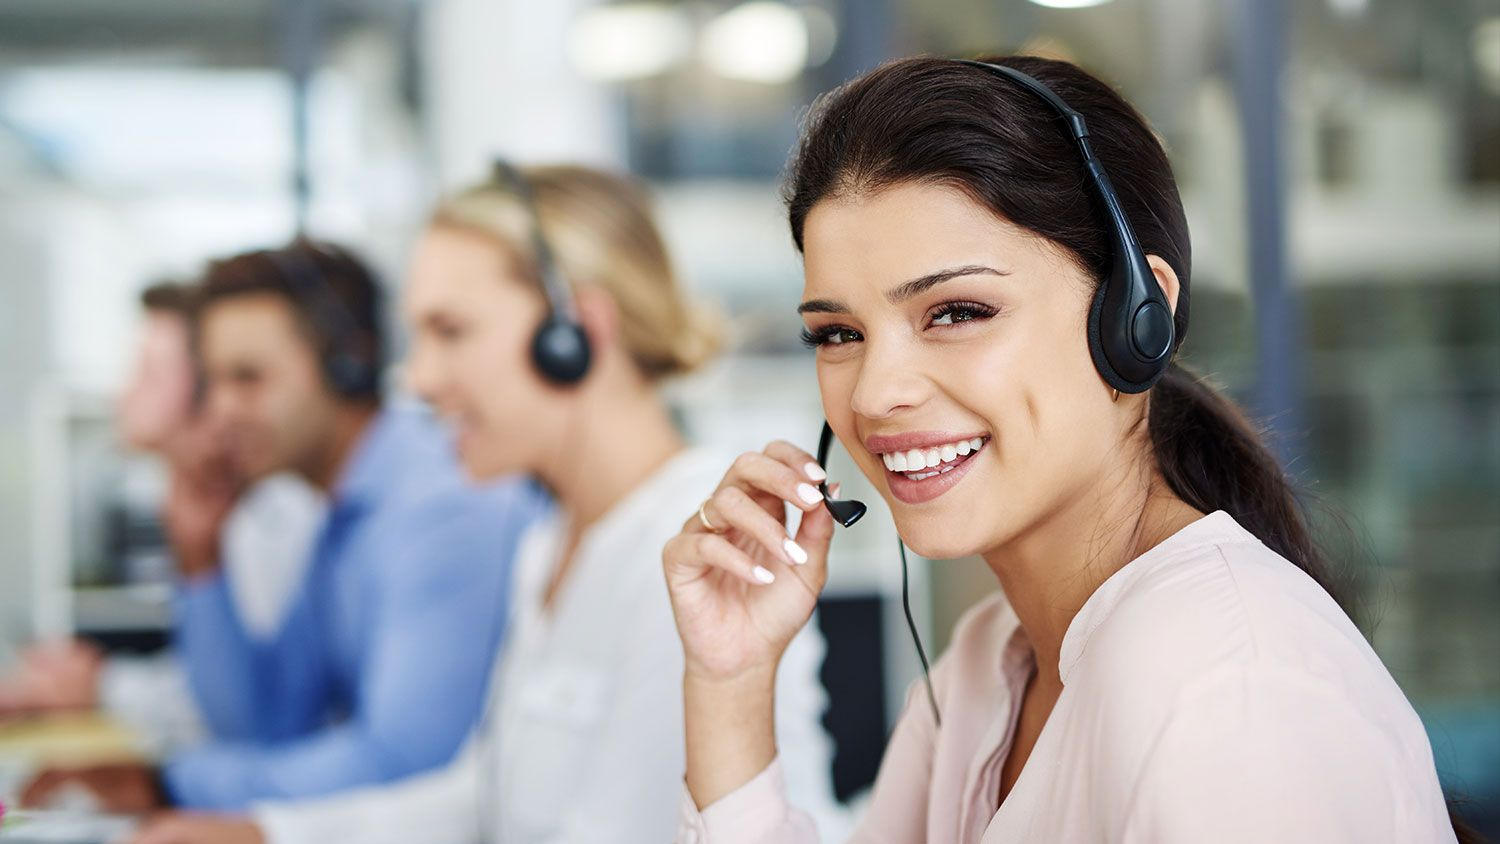 Find Out More About Their Customer Service